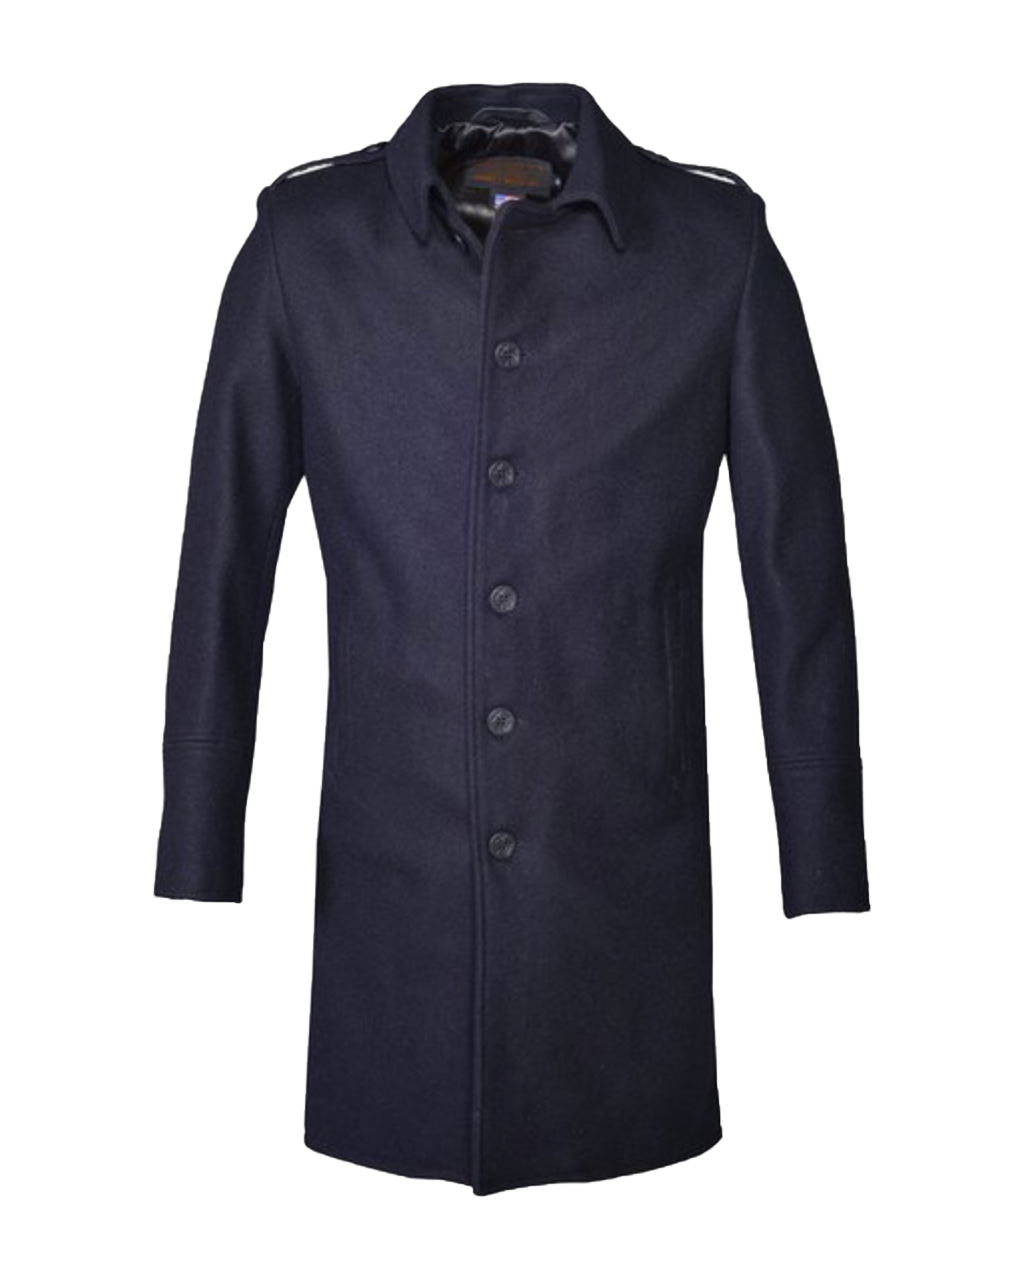 C729NE Wool Officer's Trenchcoat - New Navy